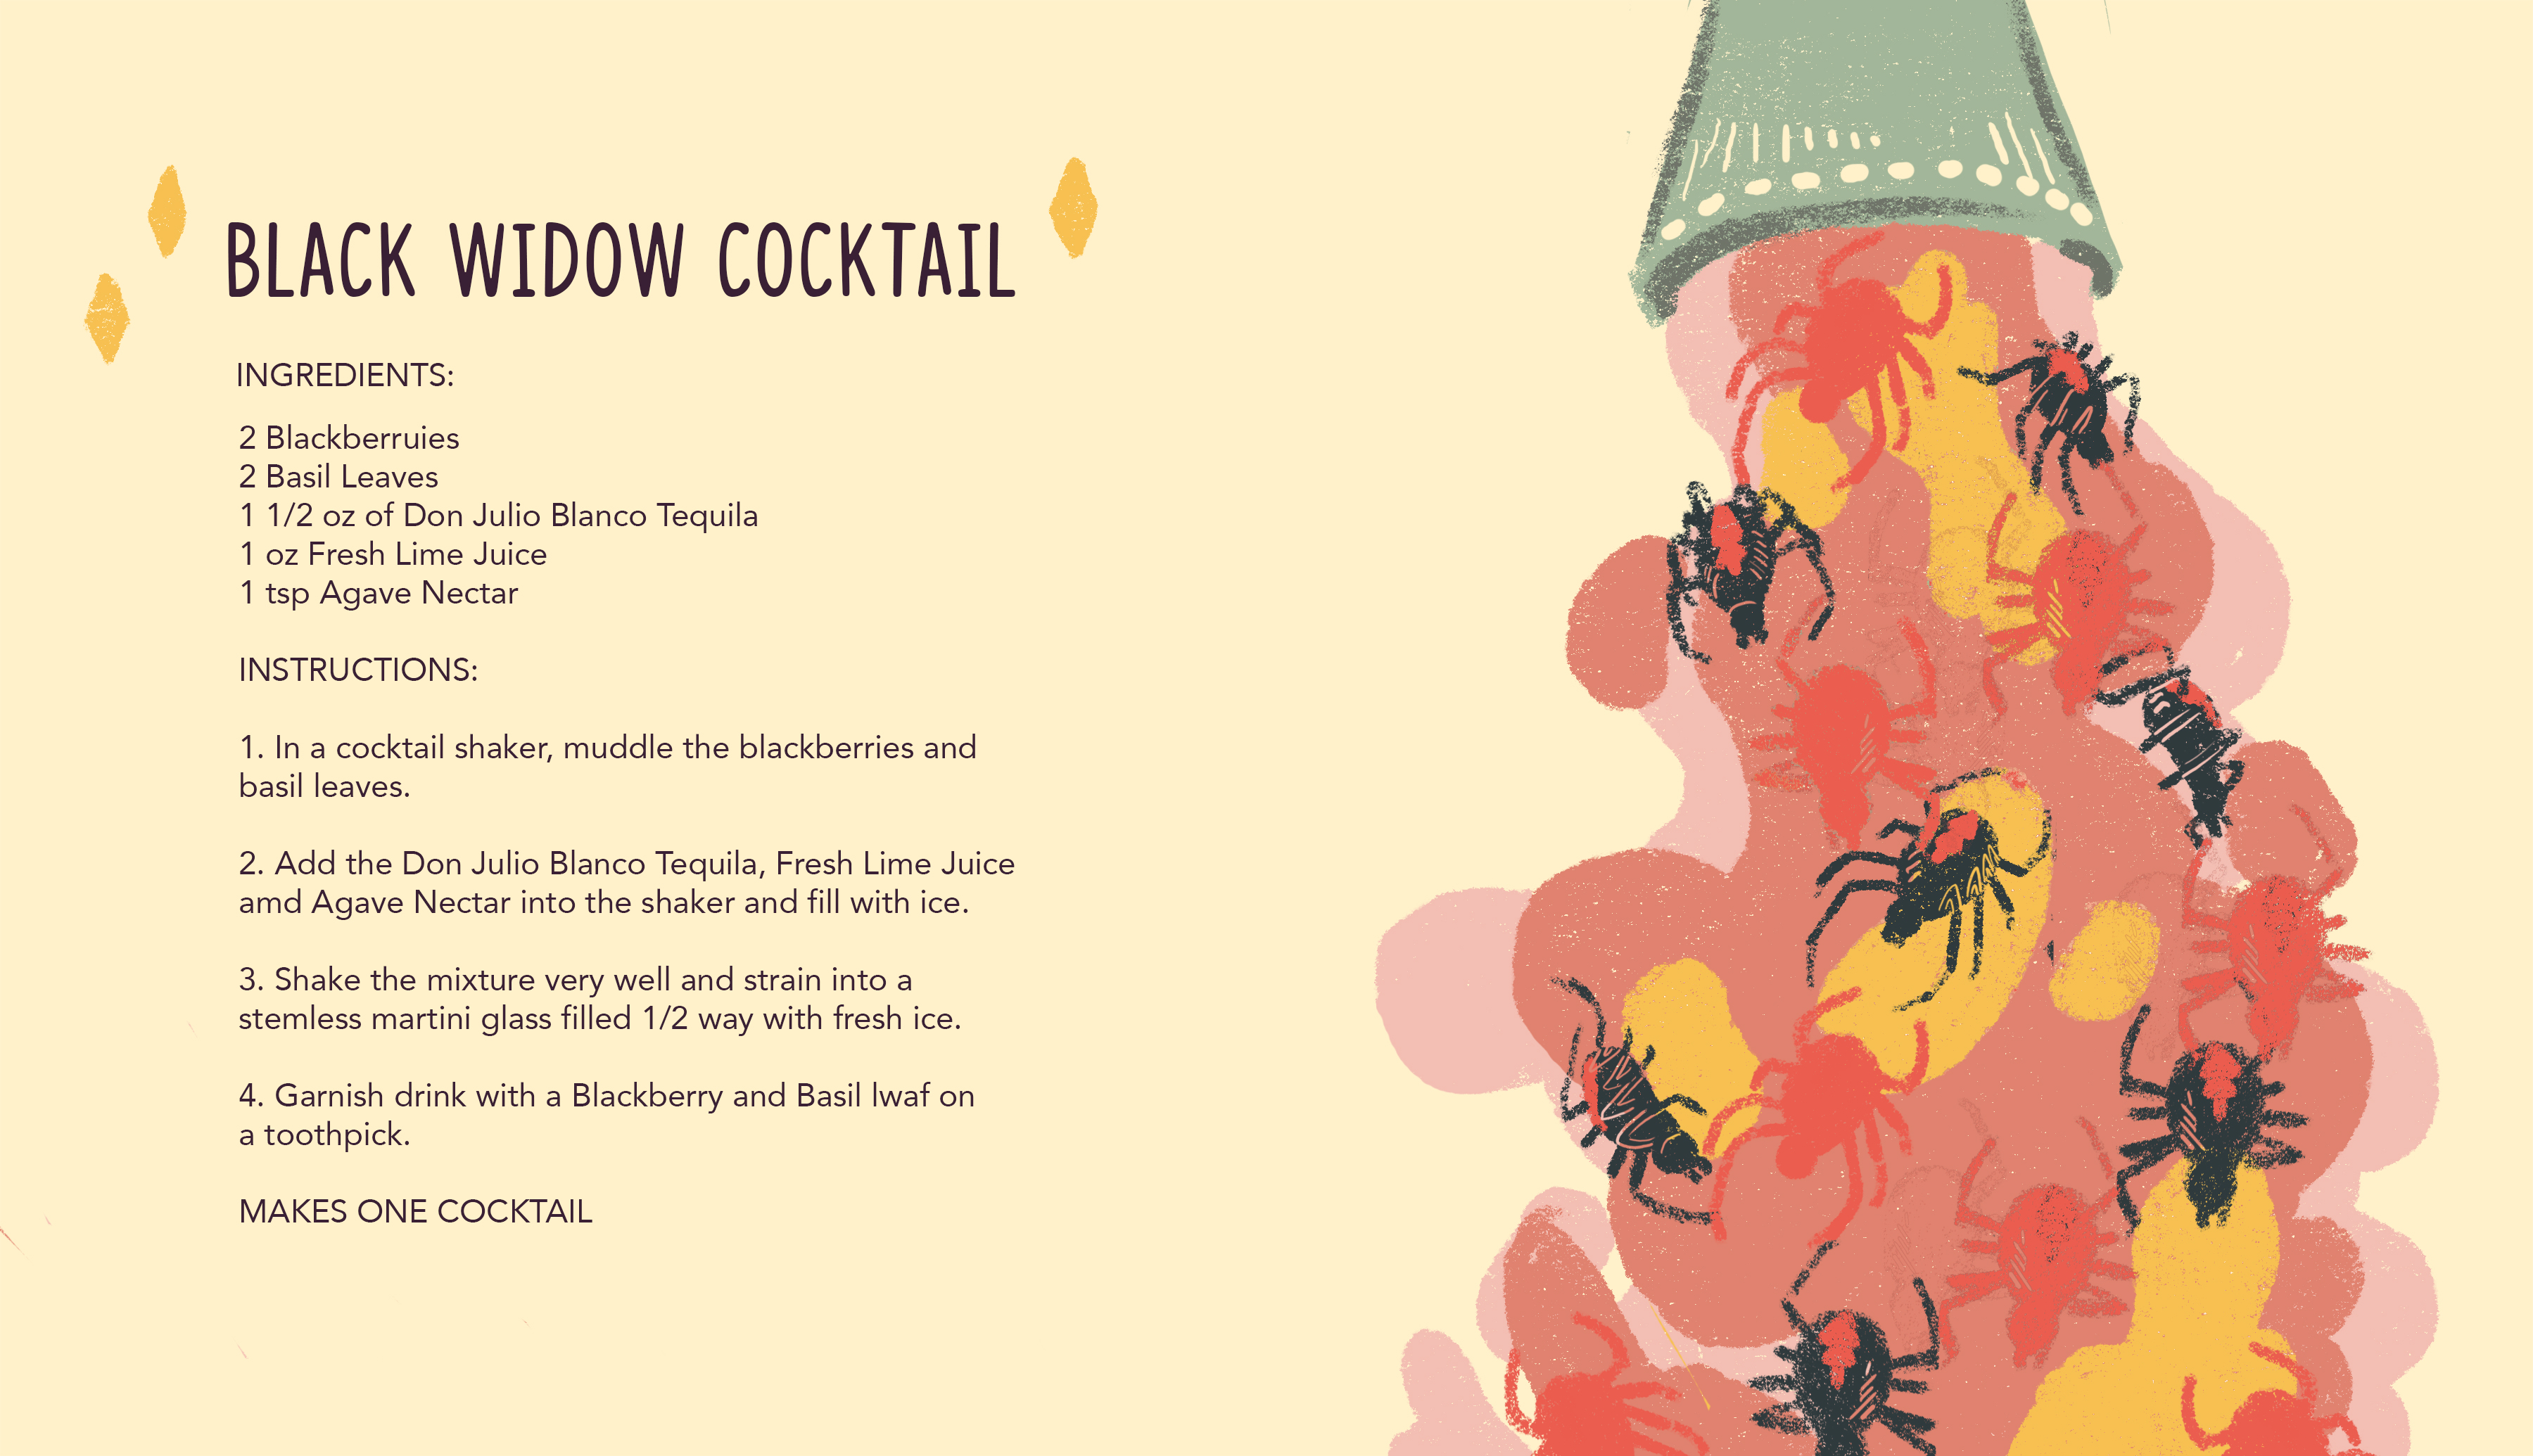 Black Widow Cocktail 1